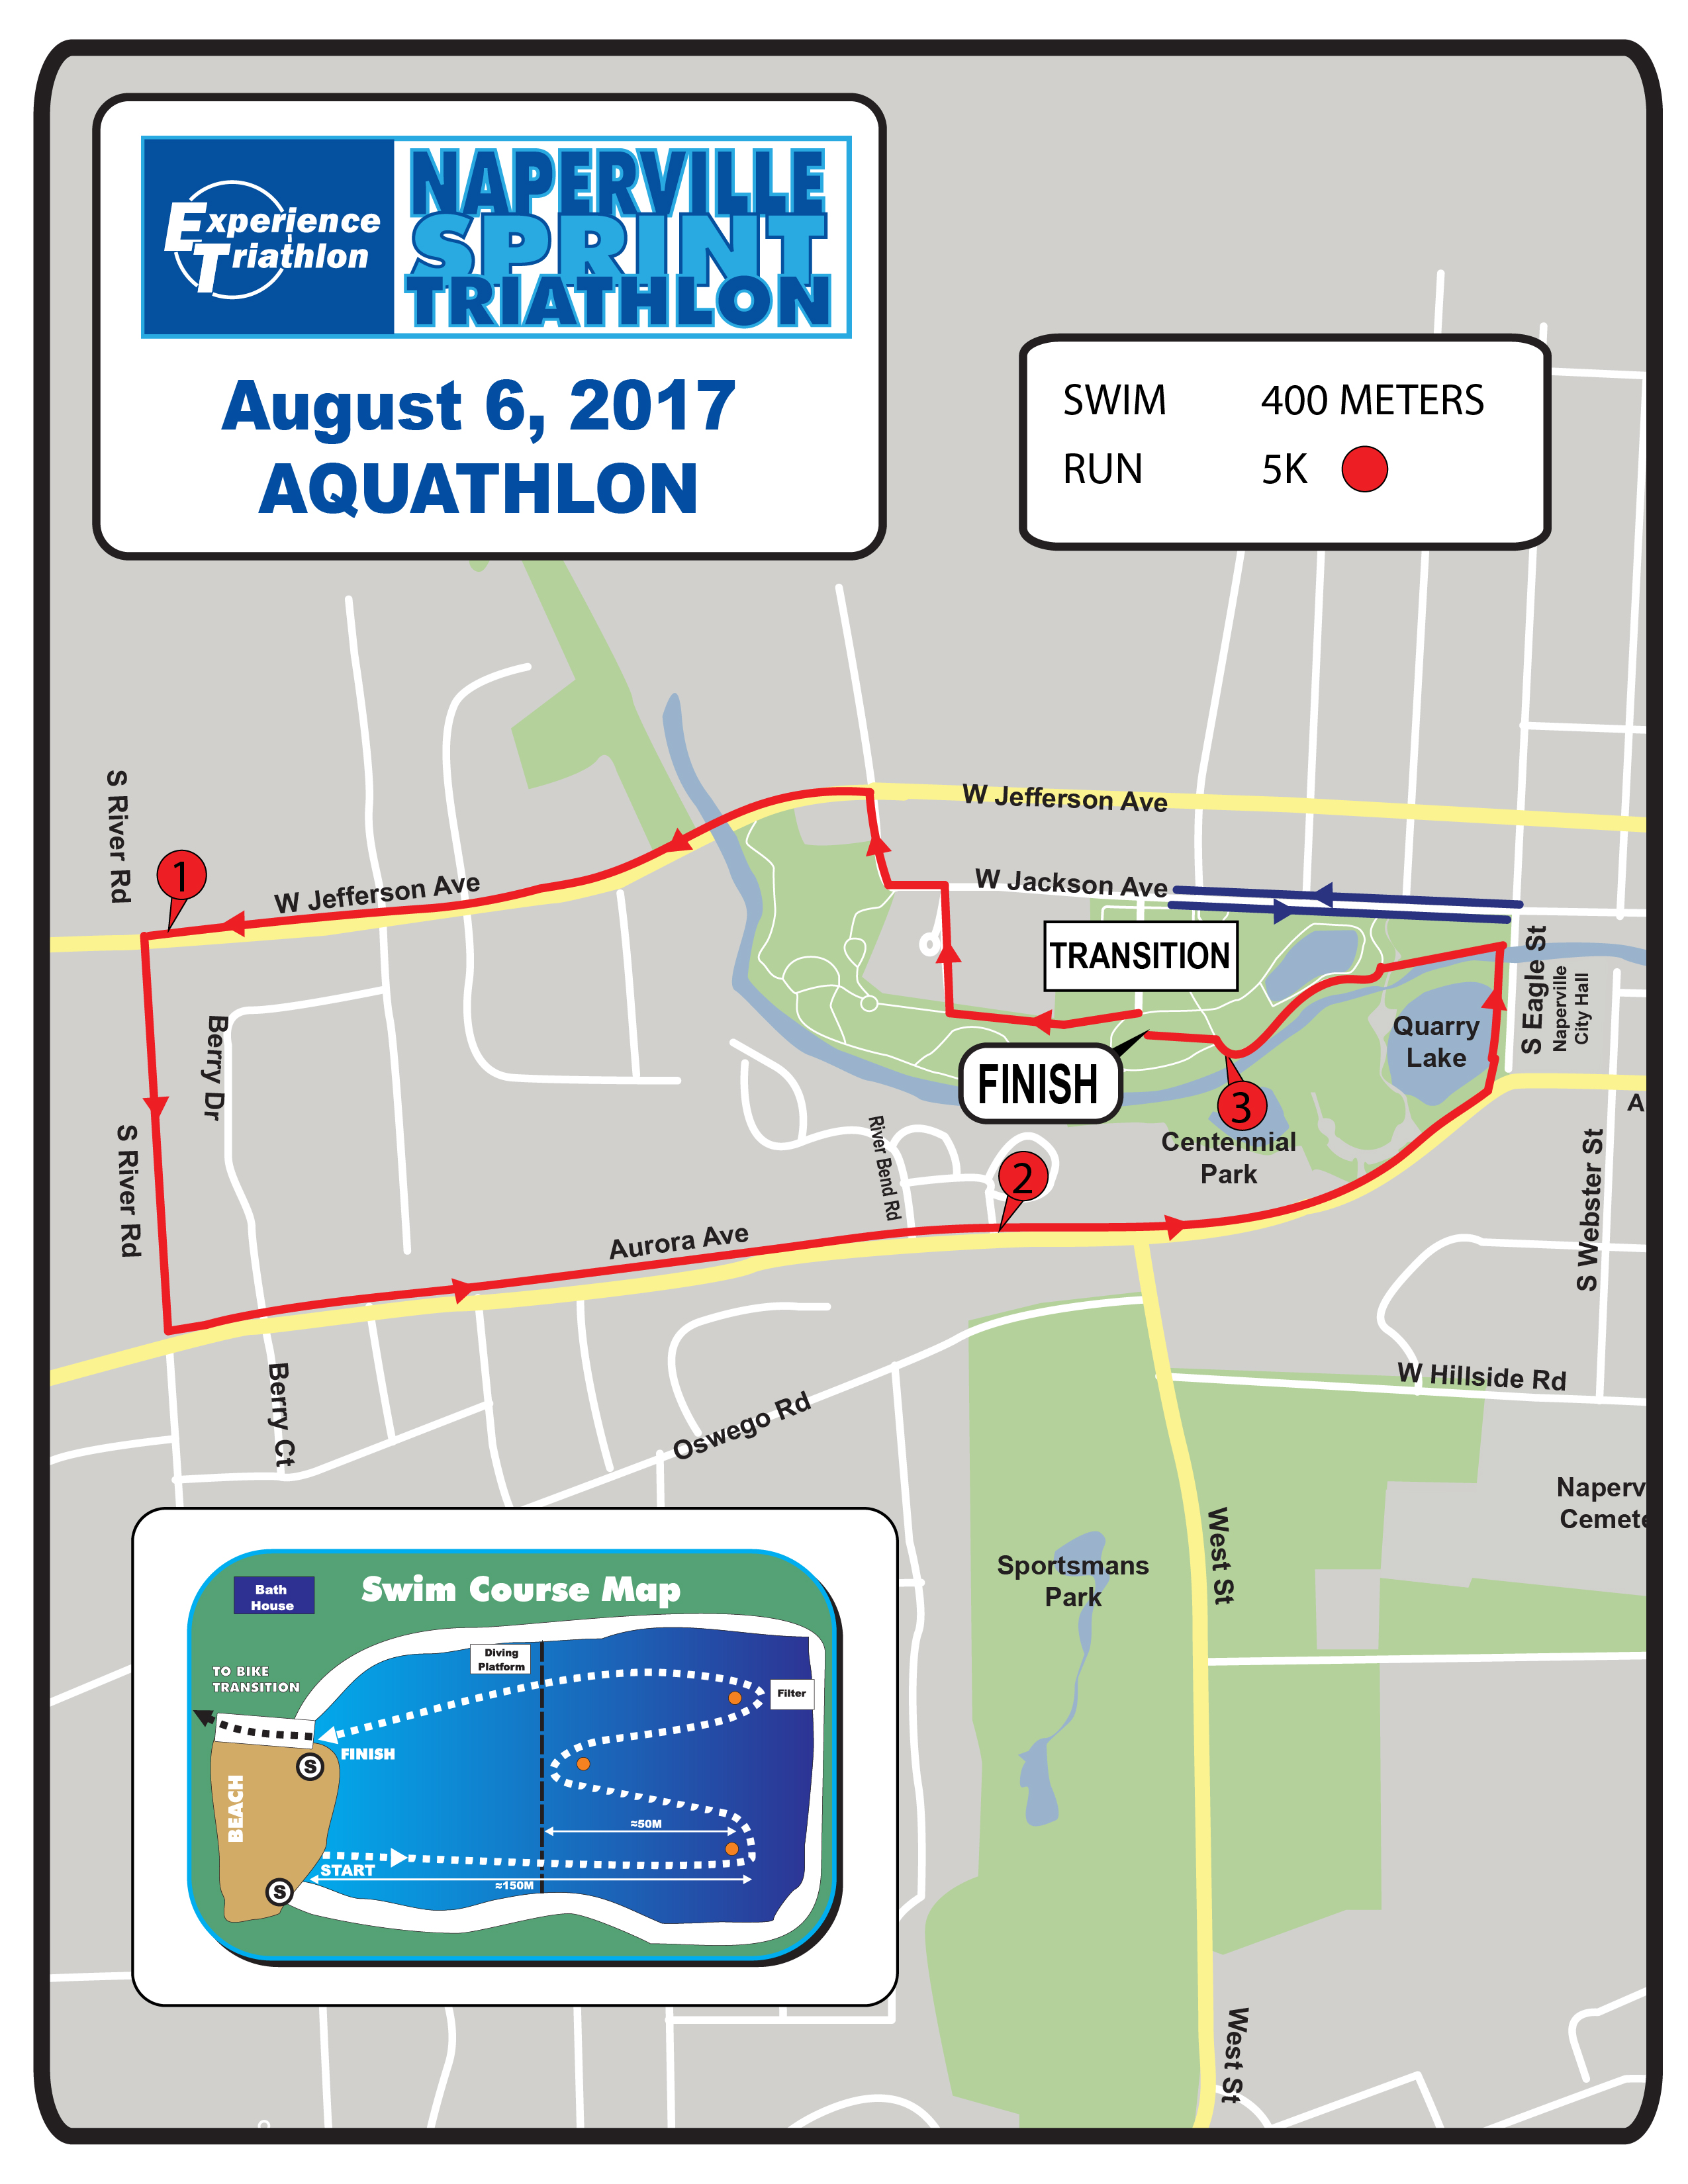 Naperville Sprint Triathon - Aquathlon Race Course